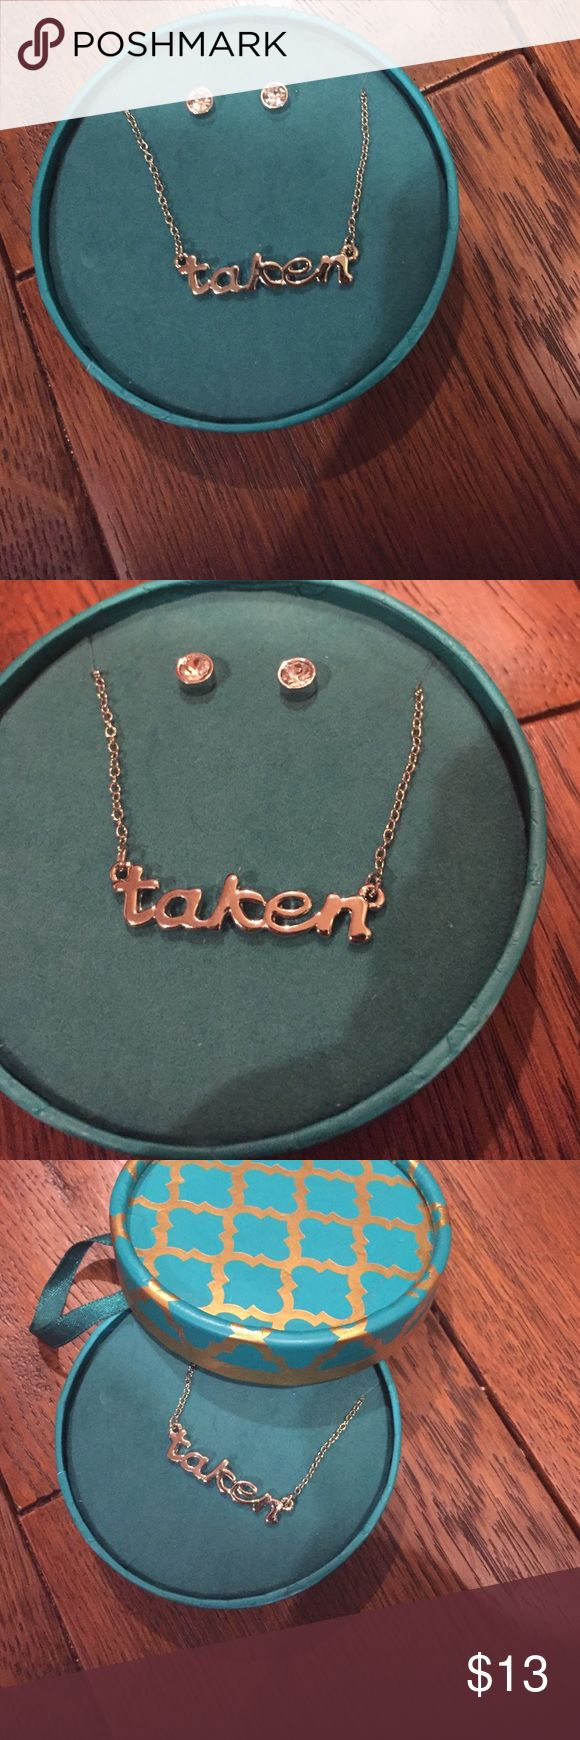 Taken necklace with earrings ! NEVER USED ! Taken necklace with small earrings to match ! Comes in box ! NEVER USED ! Great Christmas gift ! FINAL price buy now ‼️‼️🙌🏻 Jewelry Necklaces